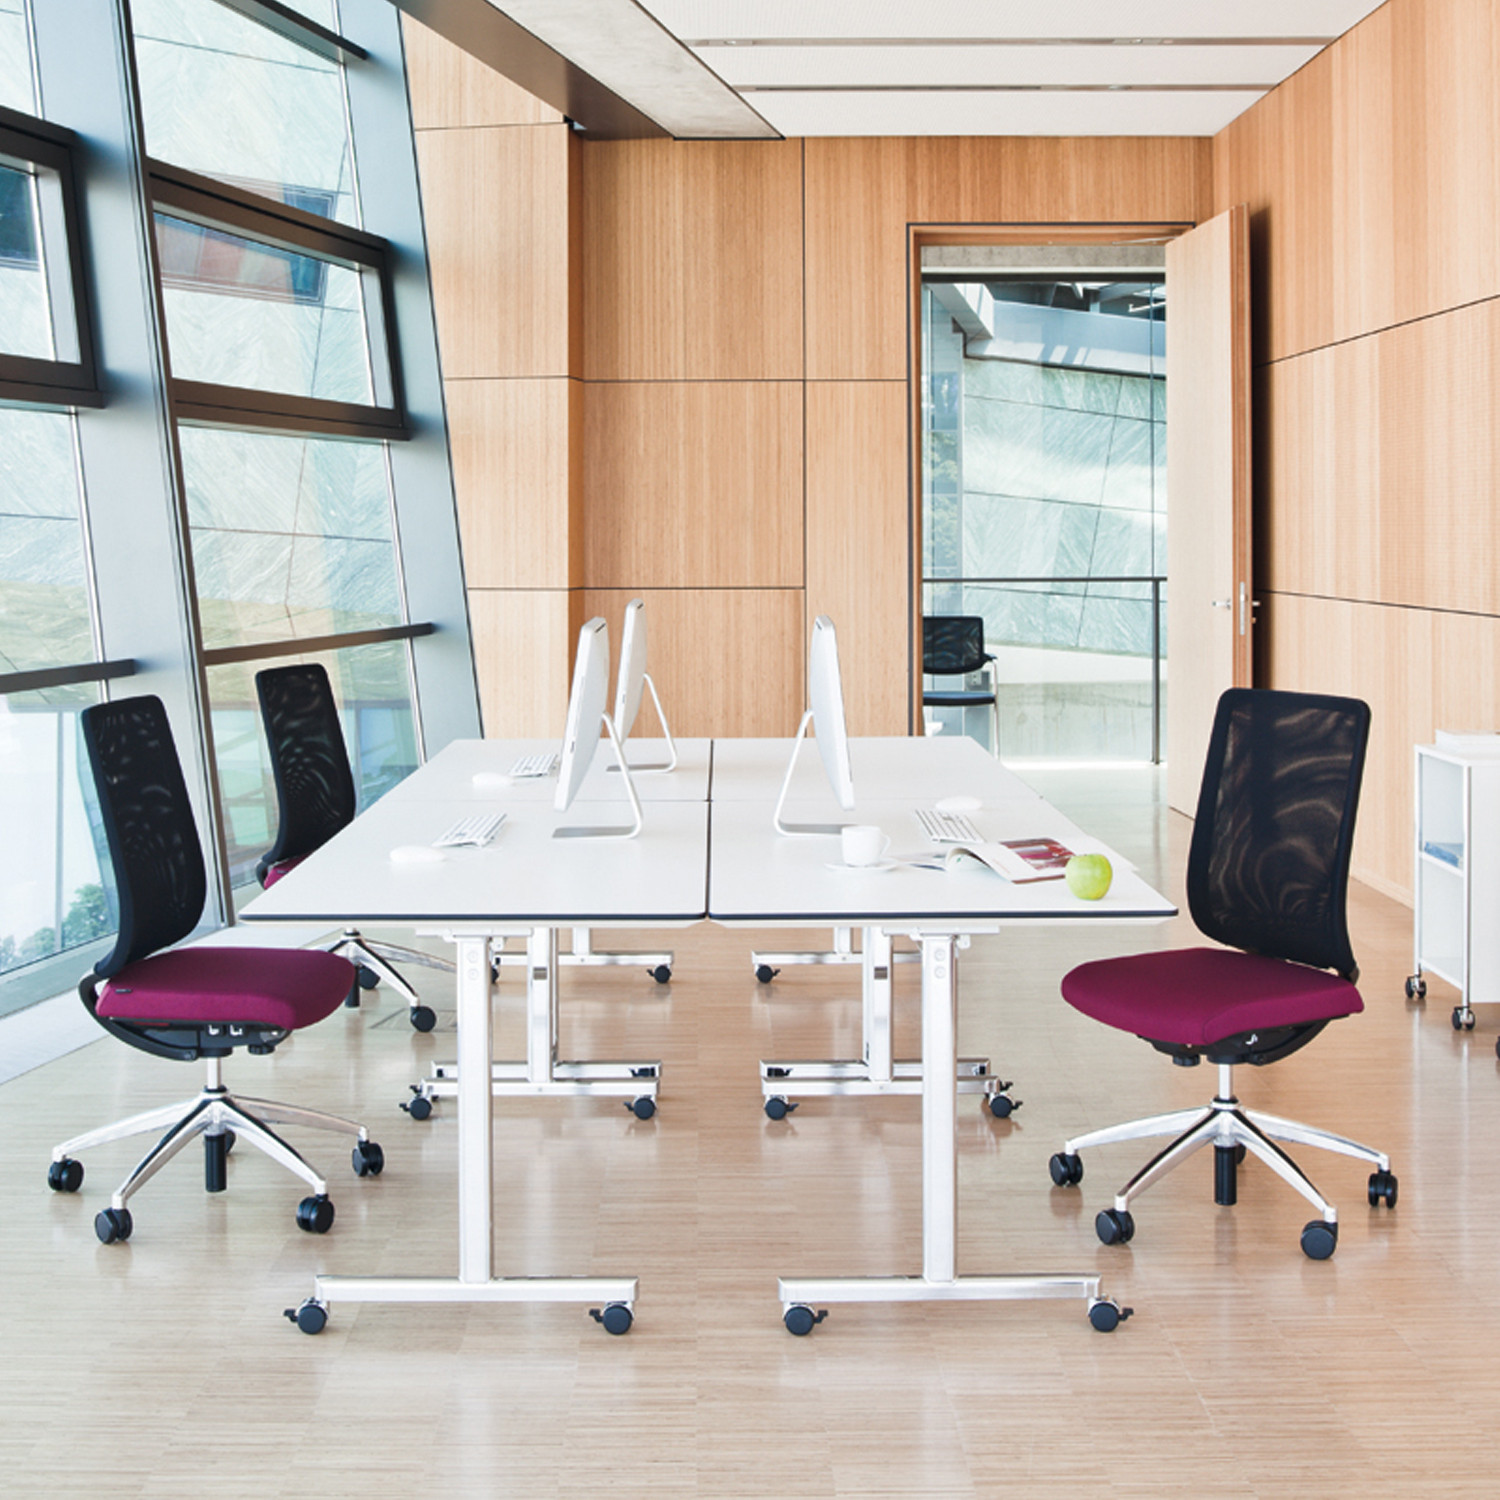 Torino Flip Tables are a f;lexible solution for the office